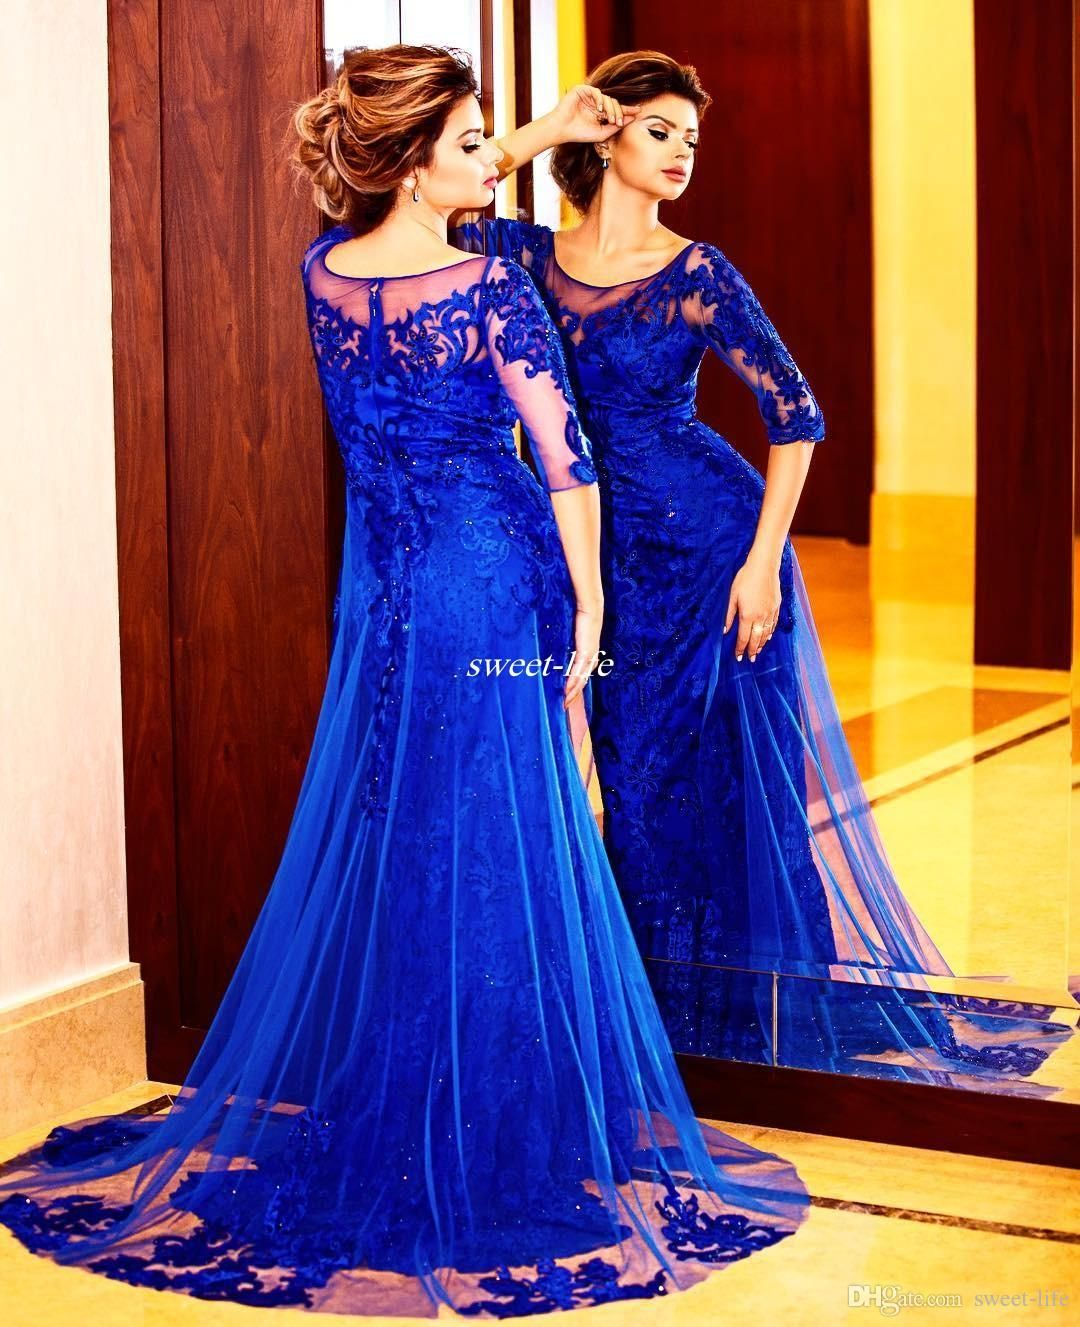 Elegant Royal Blue Mother Of The Bride Dresses With Sleeve Full Lace Train Tulle Applique 2017 Custom Made Wedding Guest Dress Evening Gowns Von Maur Mother Of Mother Of The [ 1327 x 1080 Pixel ]